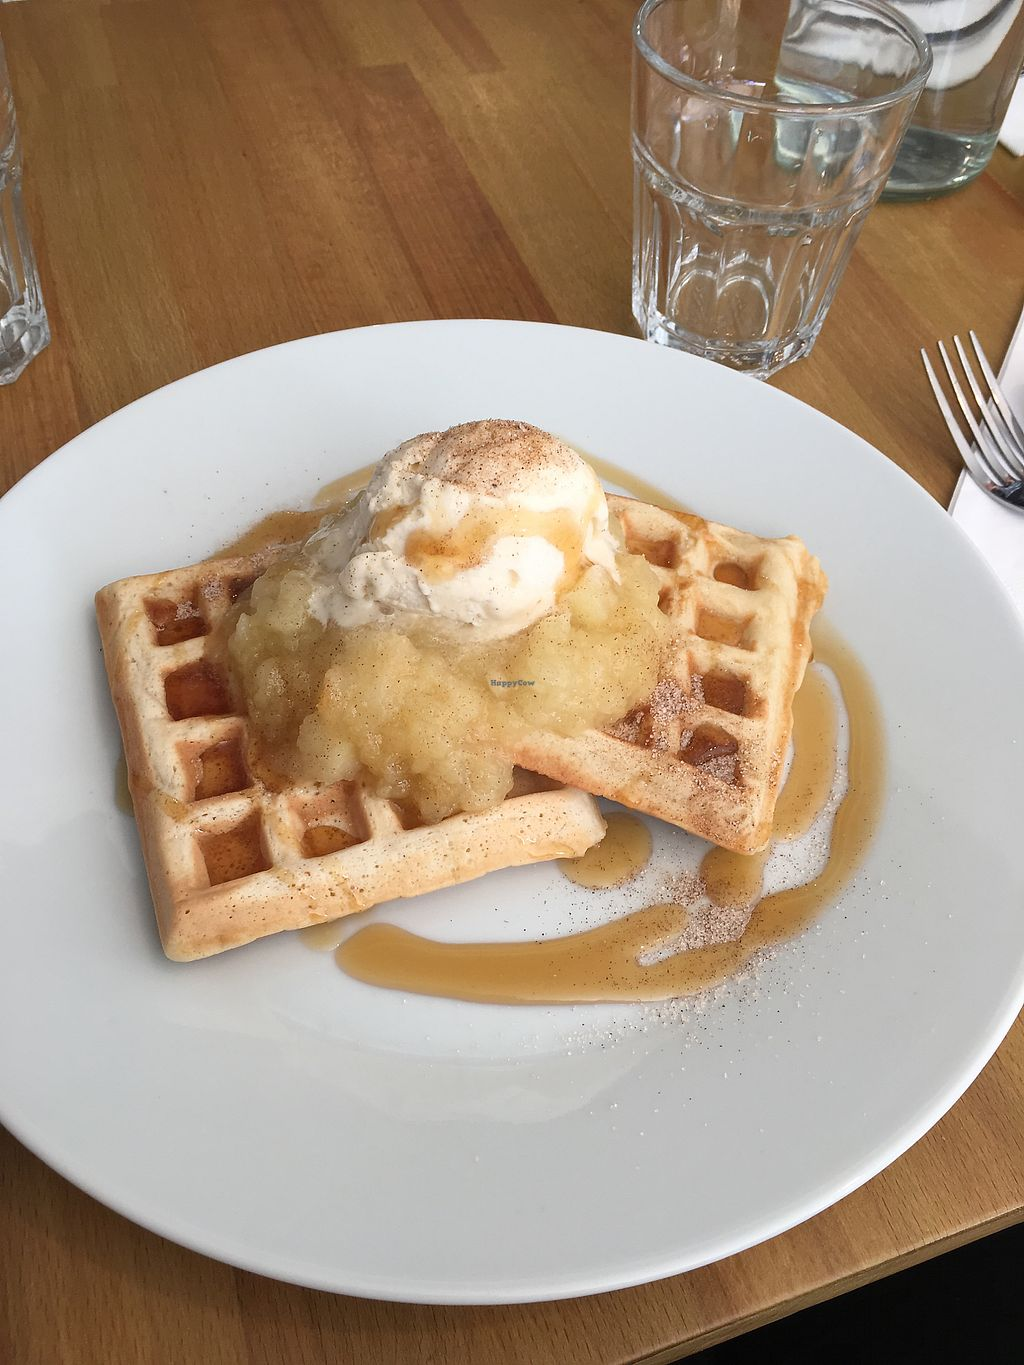 """Photo of Potato Tomato - The Eatery  by <a href=""""/members/profile/LucyGwyther"""">LucyGwyther</a> <br/>Vegan waffles with apple <br/> January 7, 2018  - <a href='/contact/abuse/image/97735/343966'>Report</a>"""